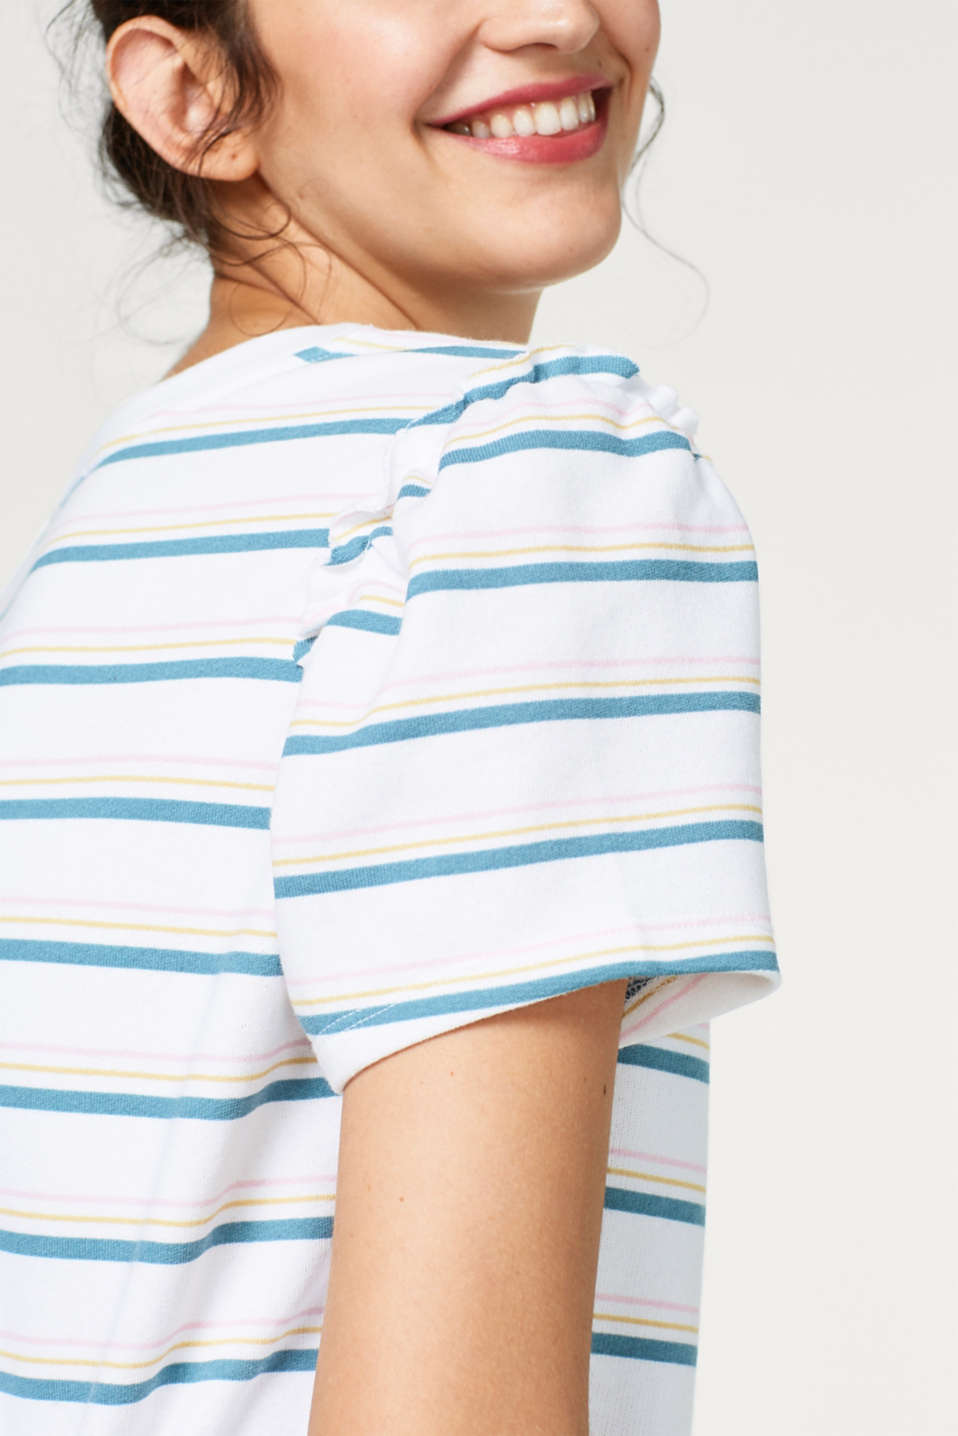 Soft sweatshirt in a striped look